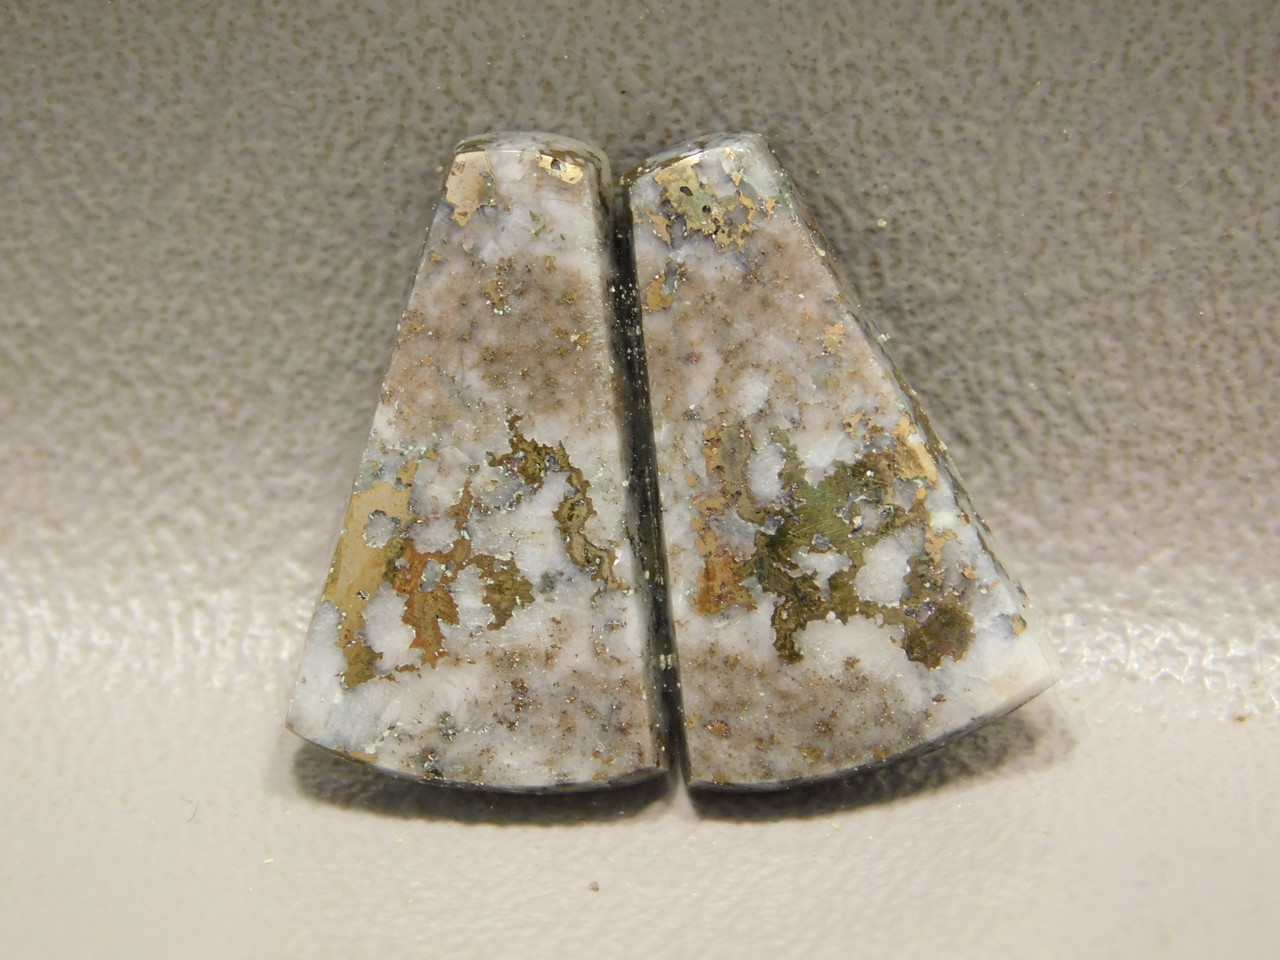 Mohawkite Matched Pair Cabochon Trapezoid Metallic Gemstone #1